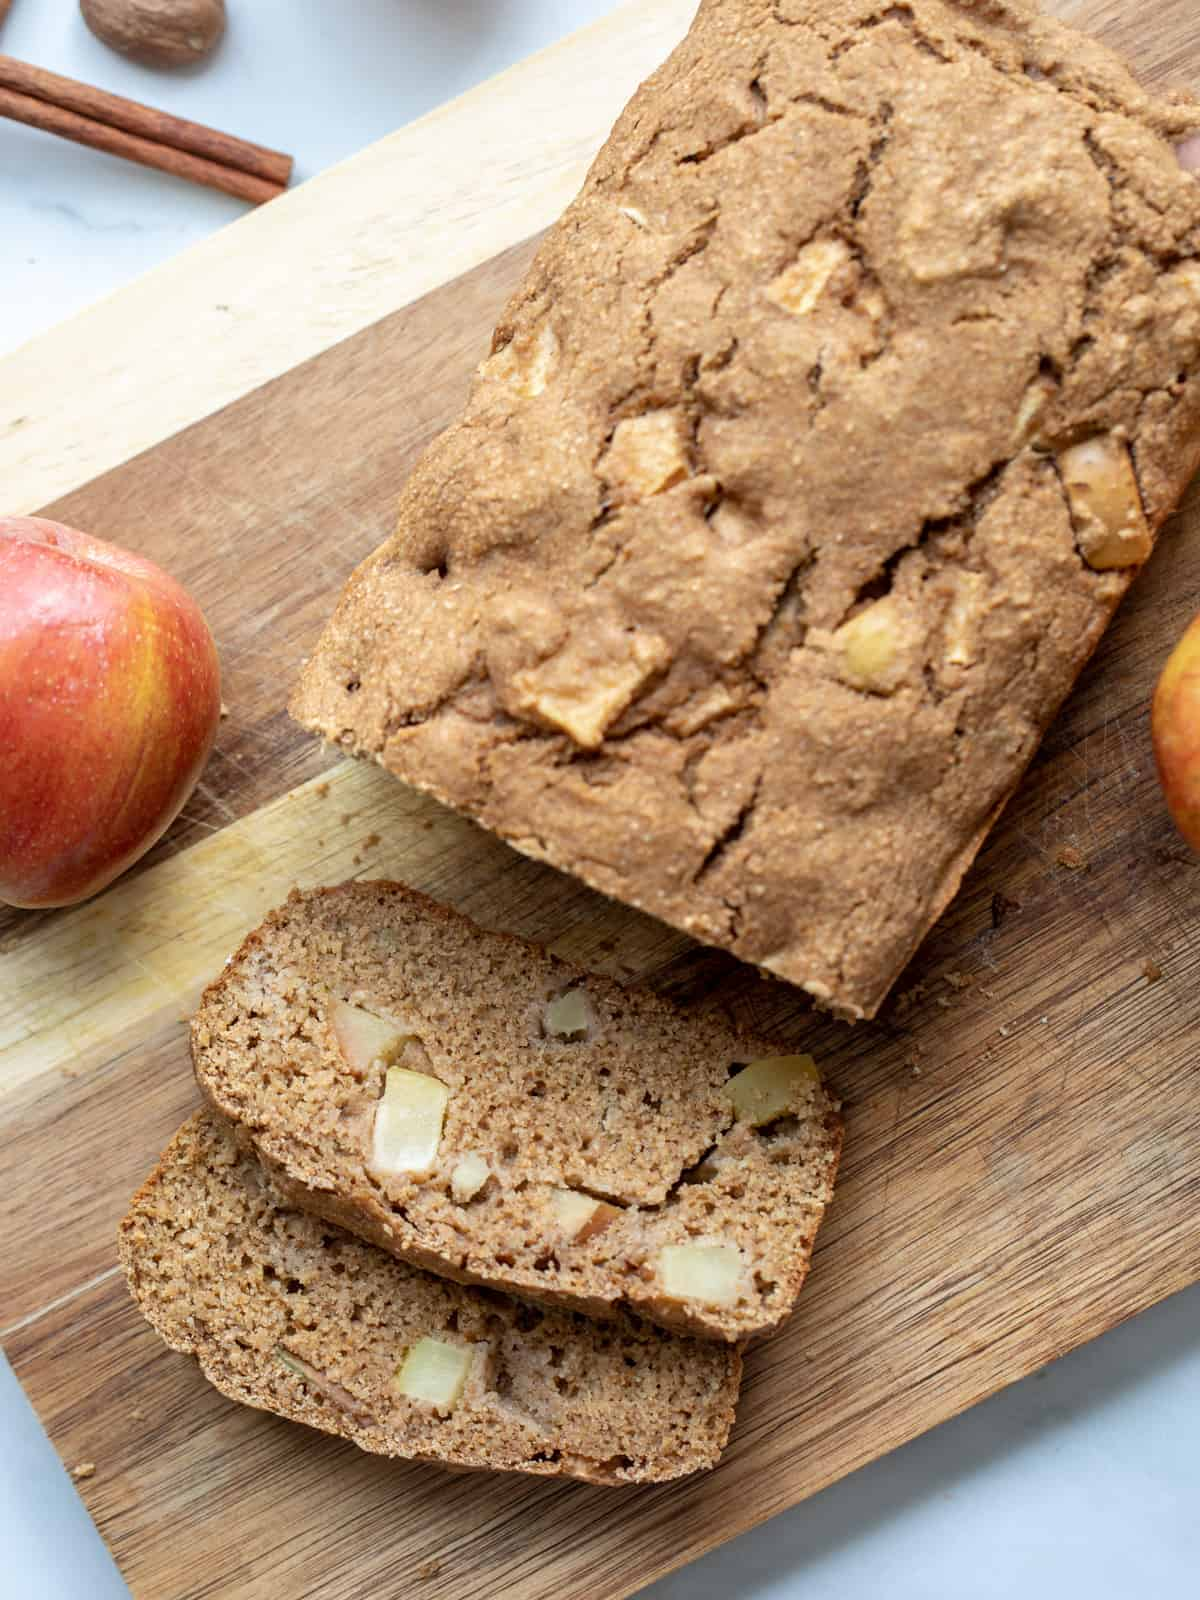 Loaf of apple bread on cutting board with 2 slices cut.